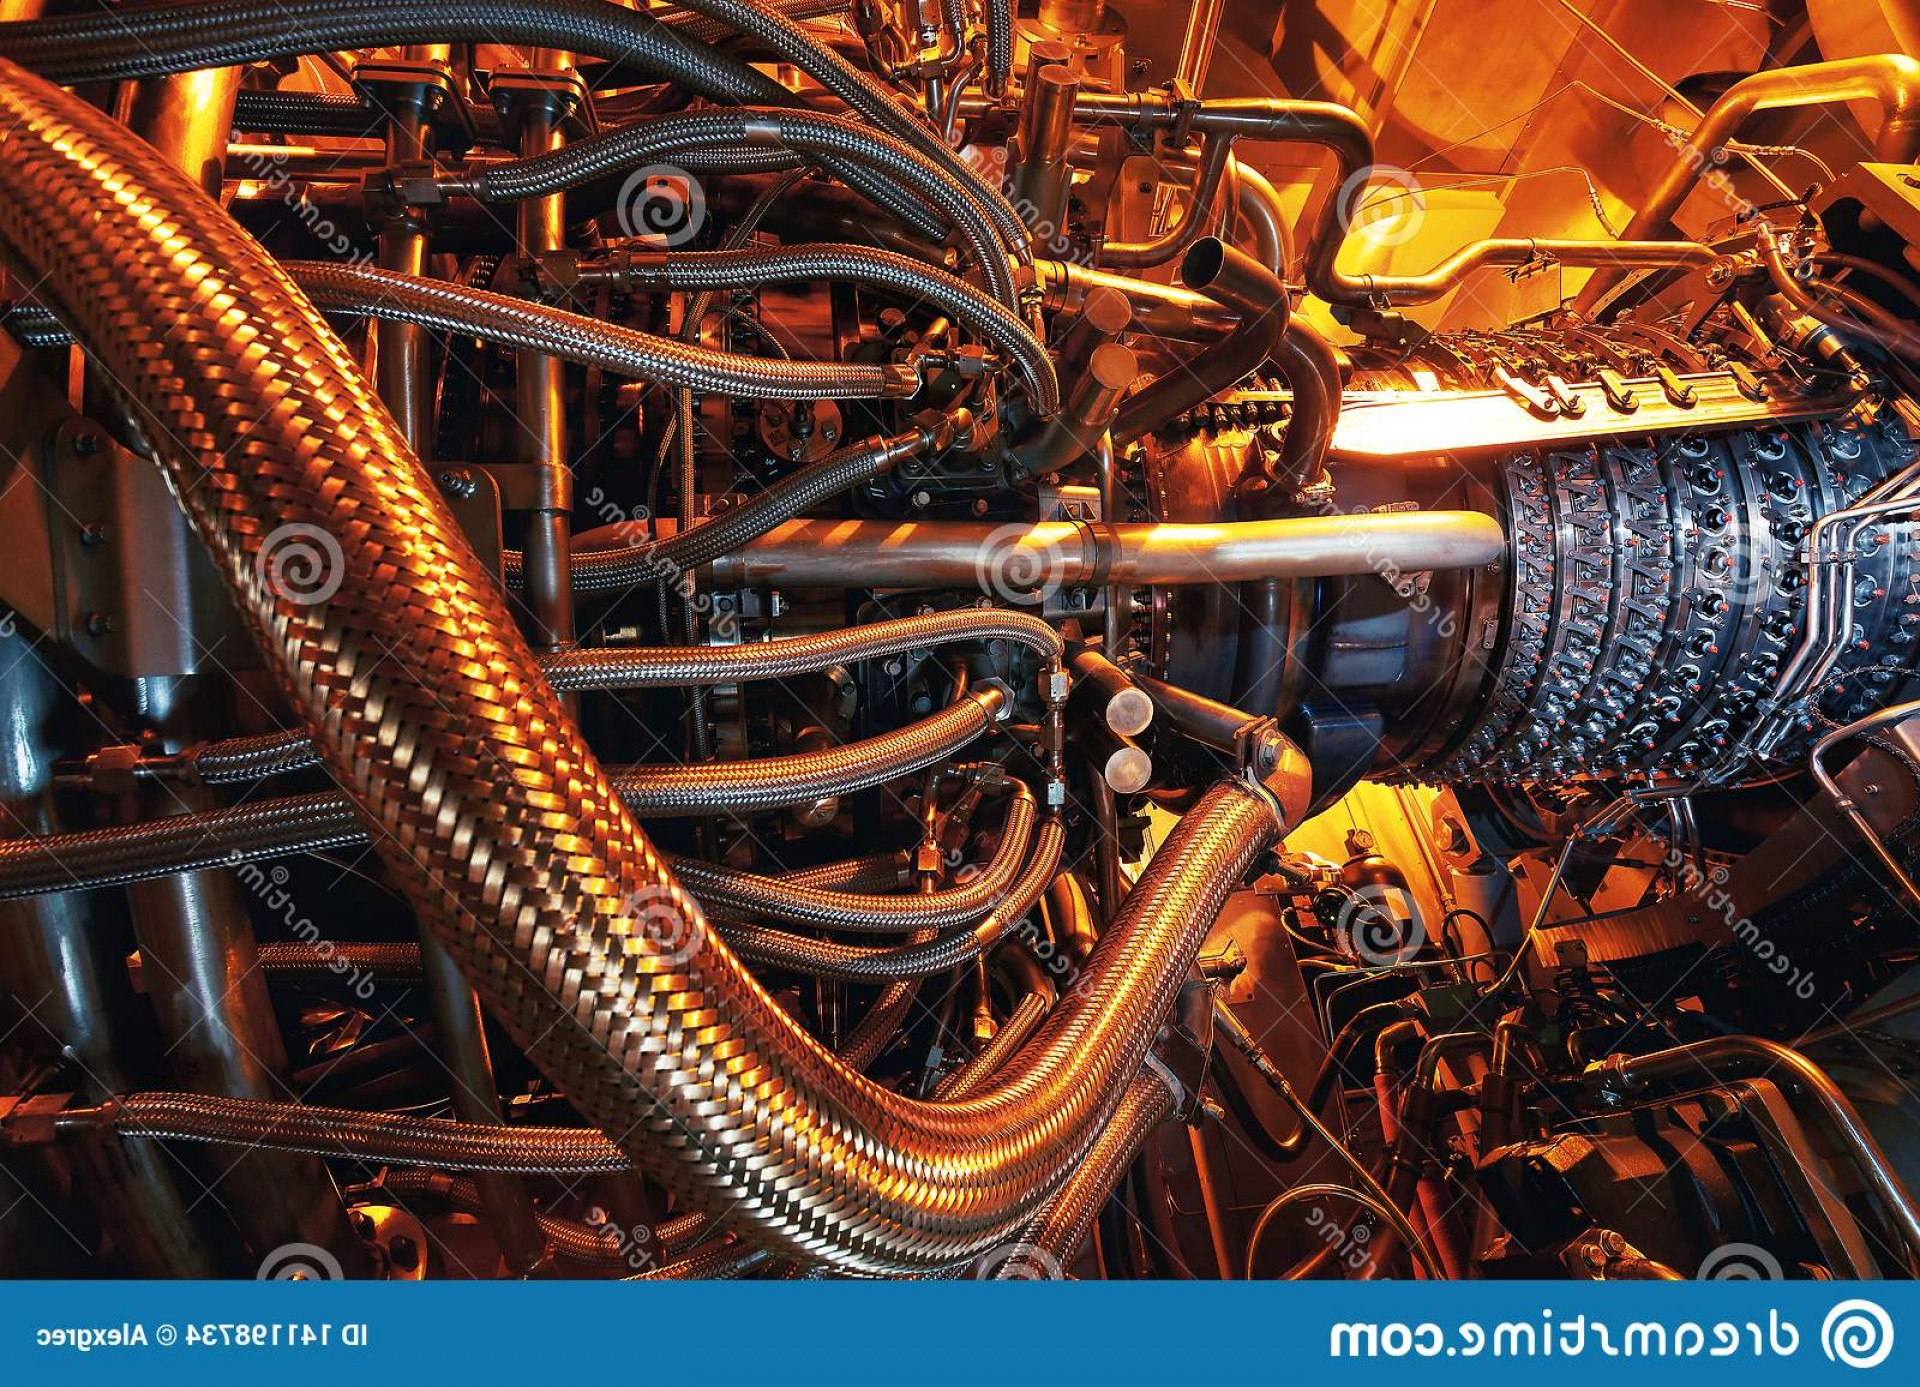 Concept Axial Vector Engine: Gas Turbine Engine Located Inside Aircraft Clean Energy Power Plant Used Offshore Oil Refining Central Platform Image